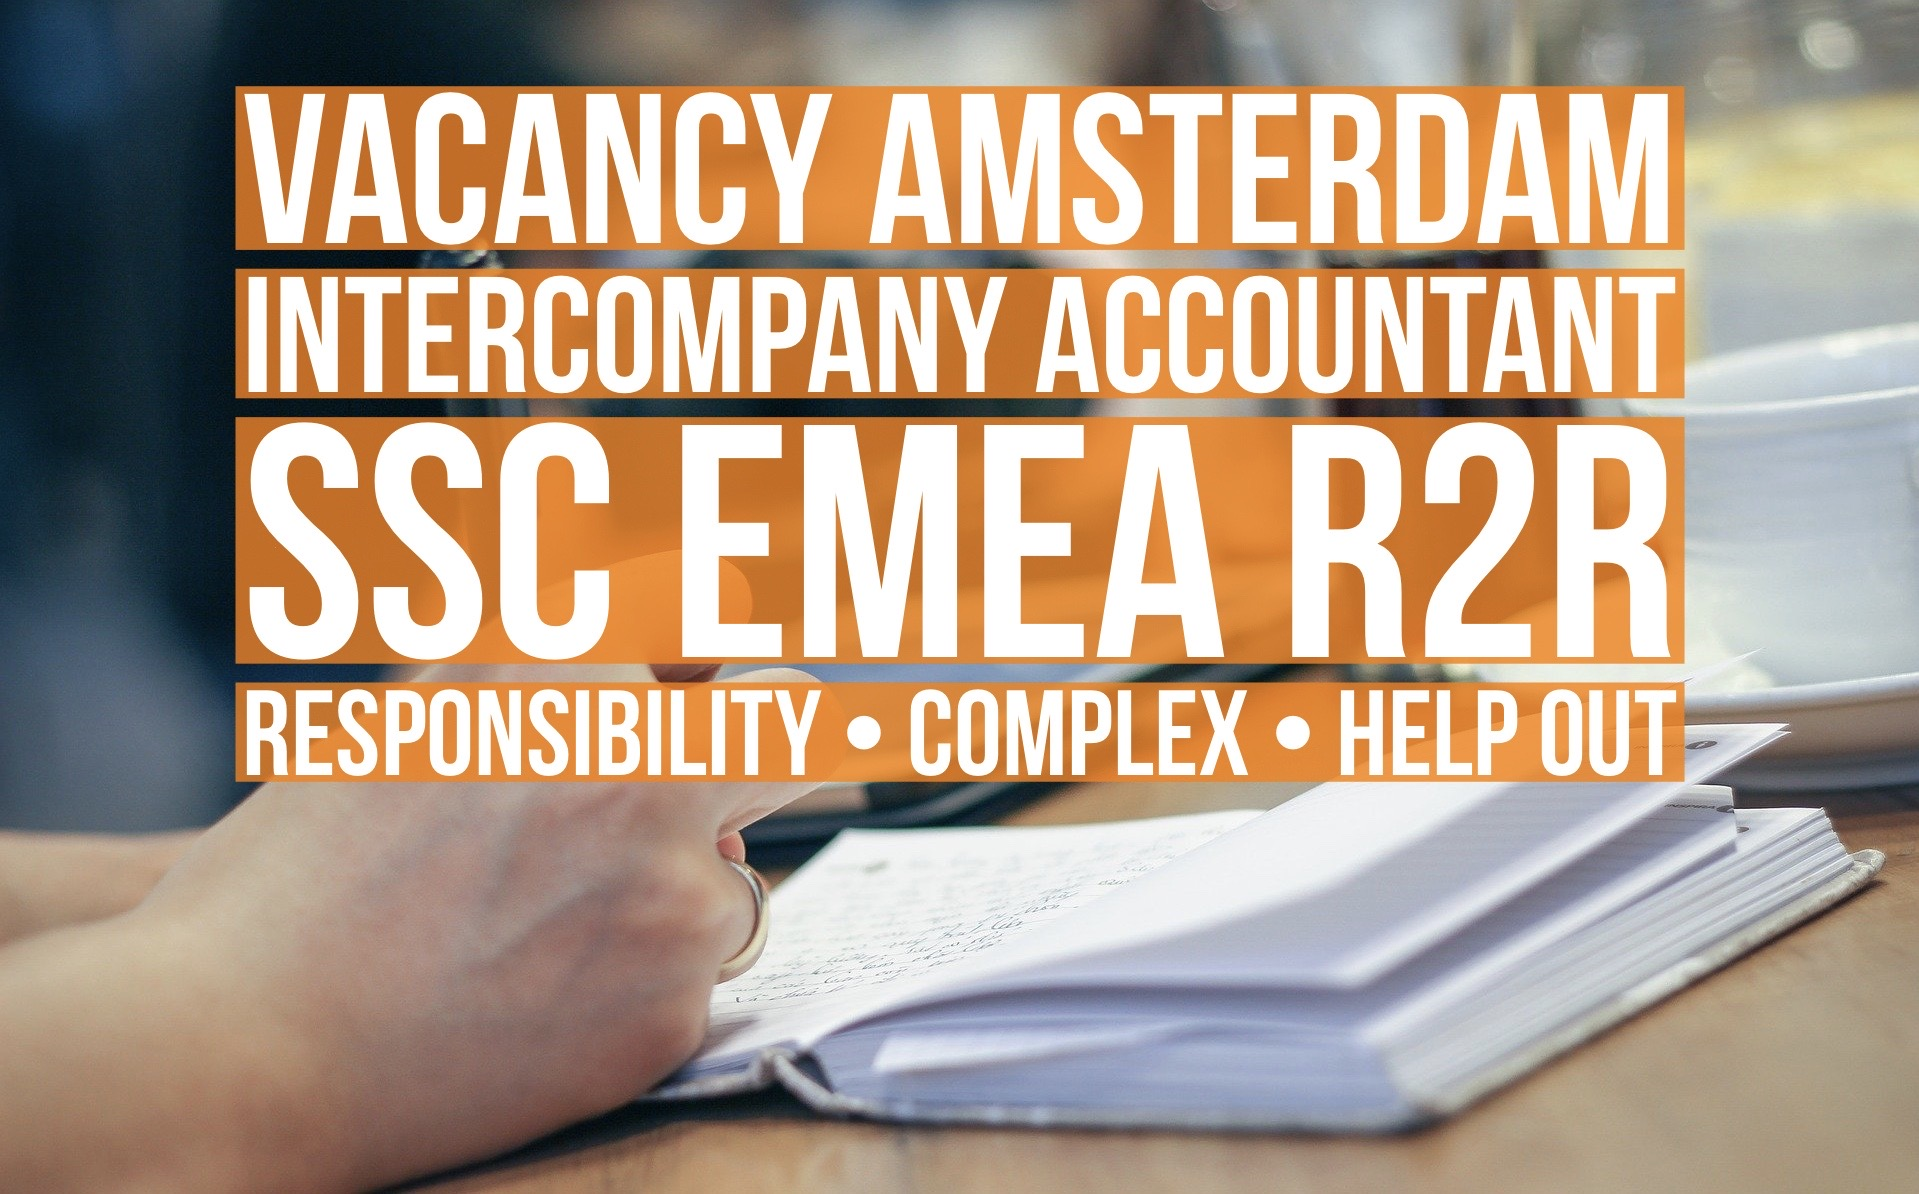 Intercompany accountant emea ssc r2r vacancy Amsterdam